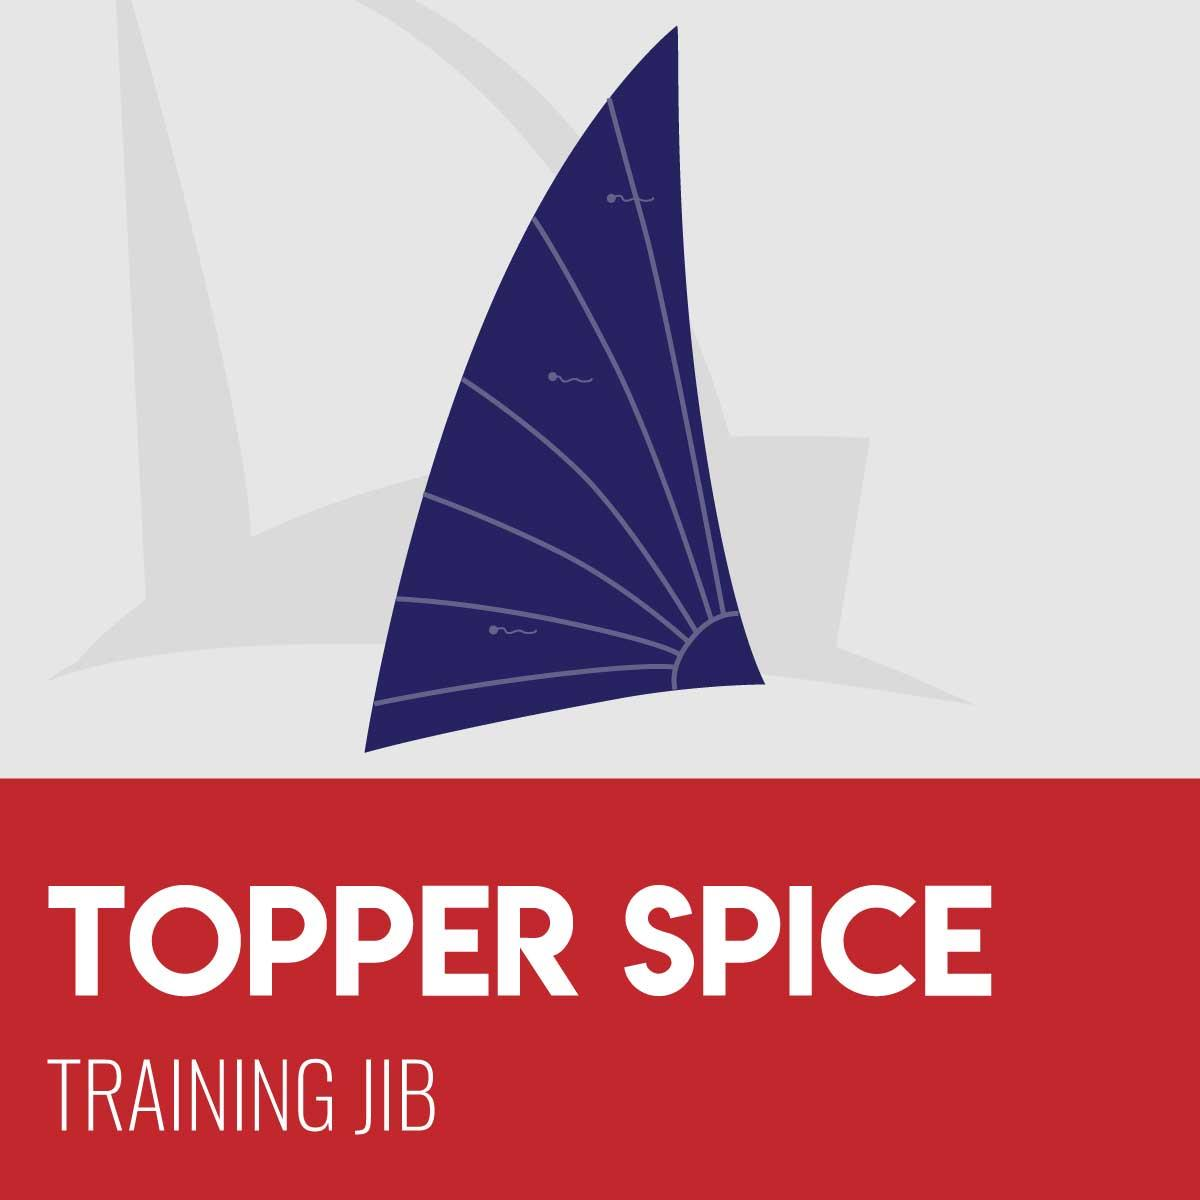 Topper Spice Training Jib